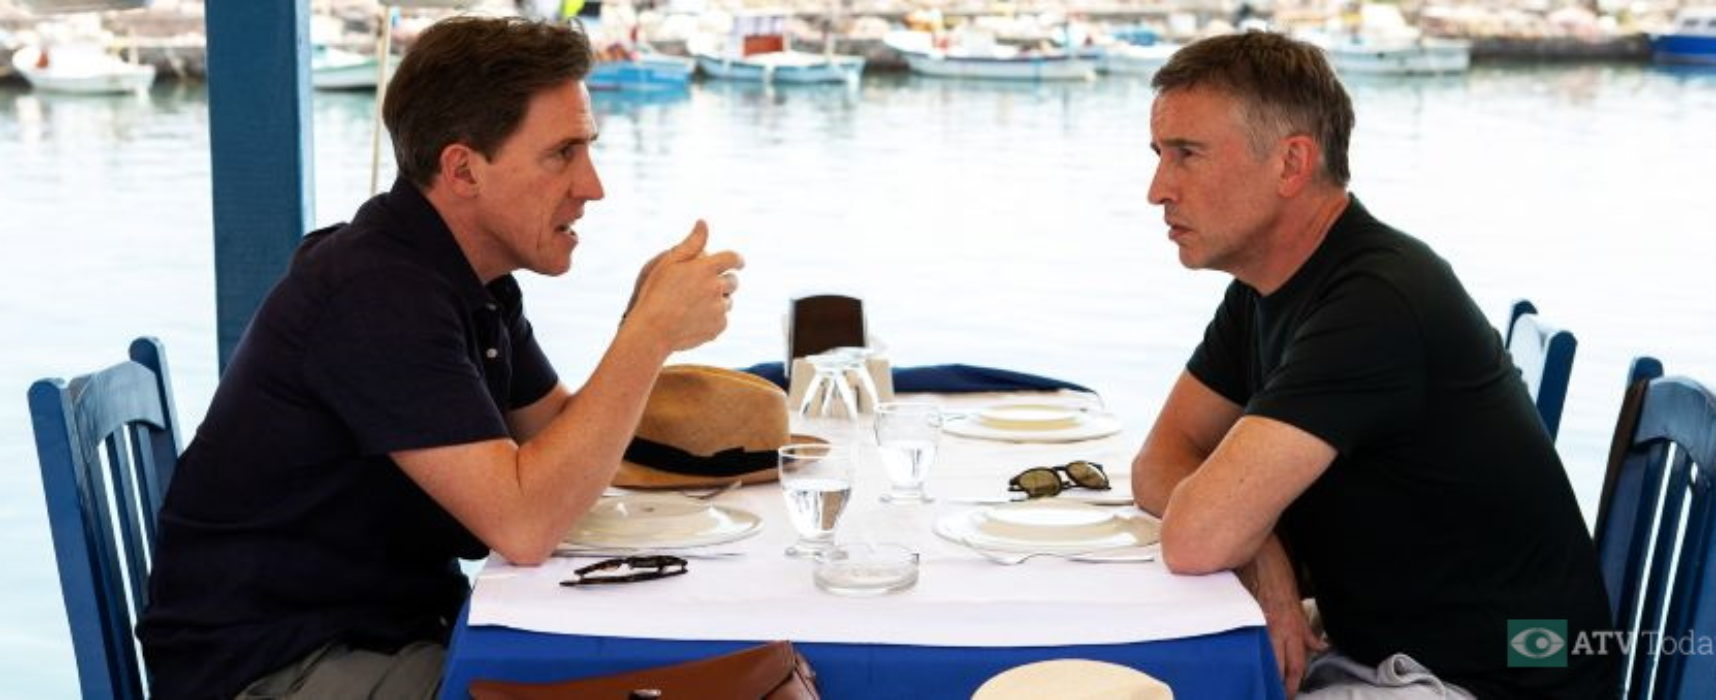 Steve Coogan and Rob Brydon return to Sky One with The Trip